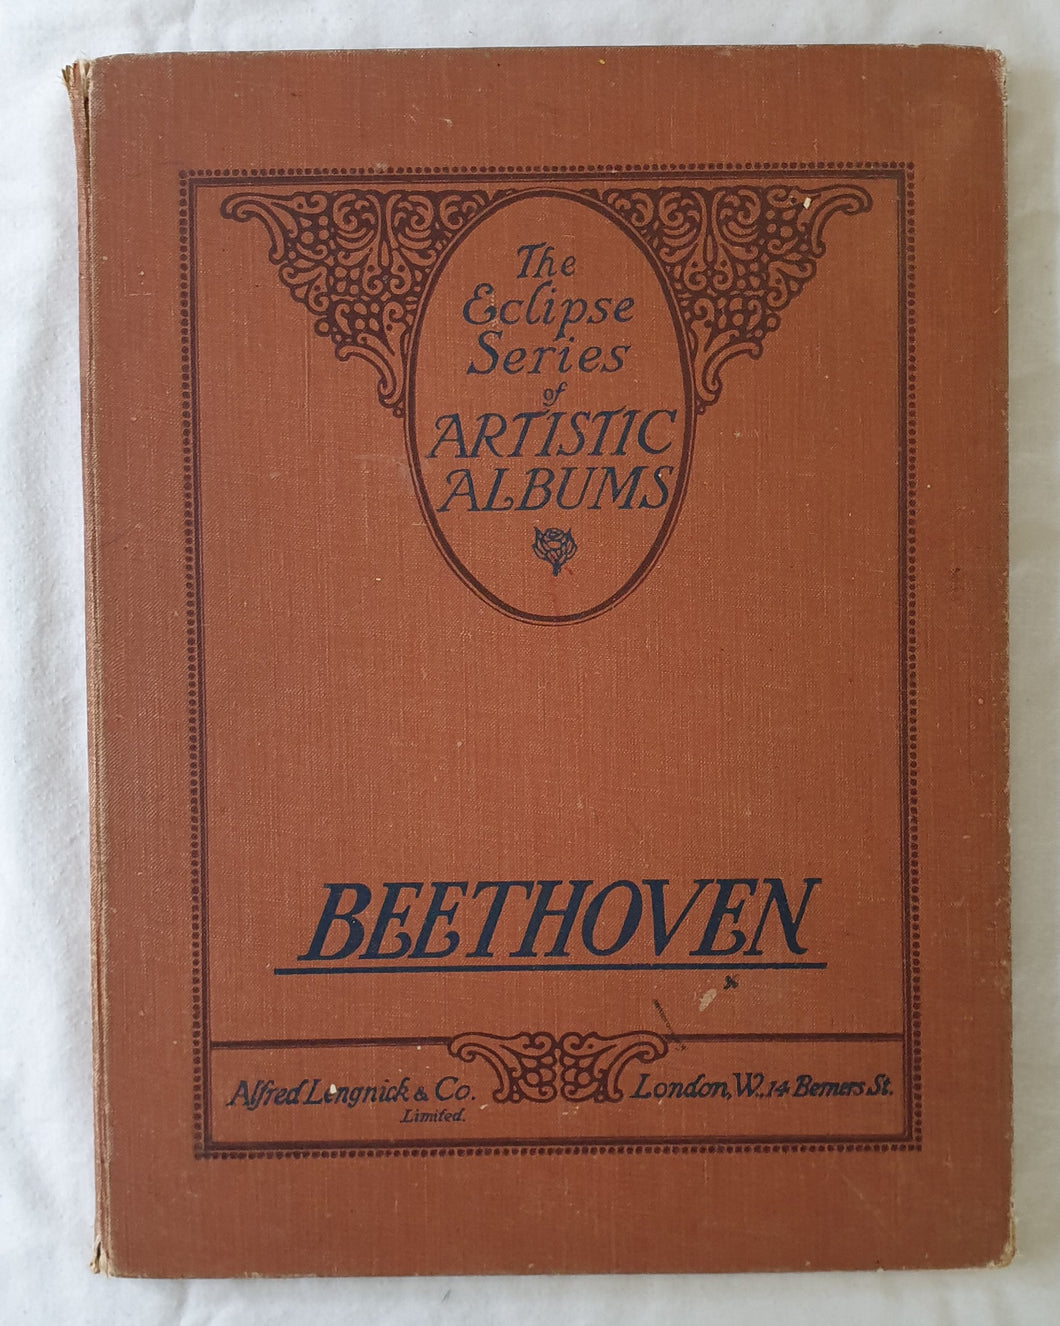 Beethoven Favourite Pieces  The Eclipse Series of Artistic Pianoforte Albums No. 3  Edited and Revised by Eugen D'Albert